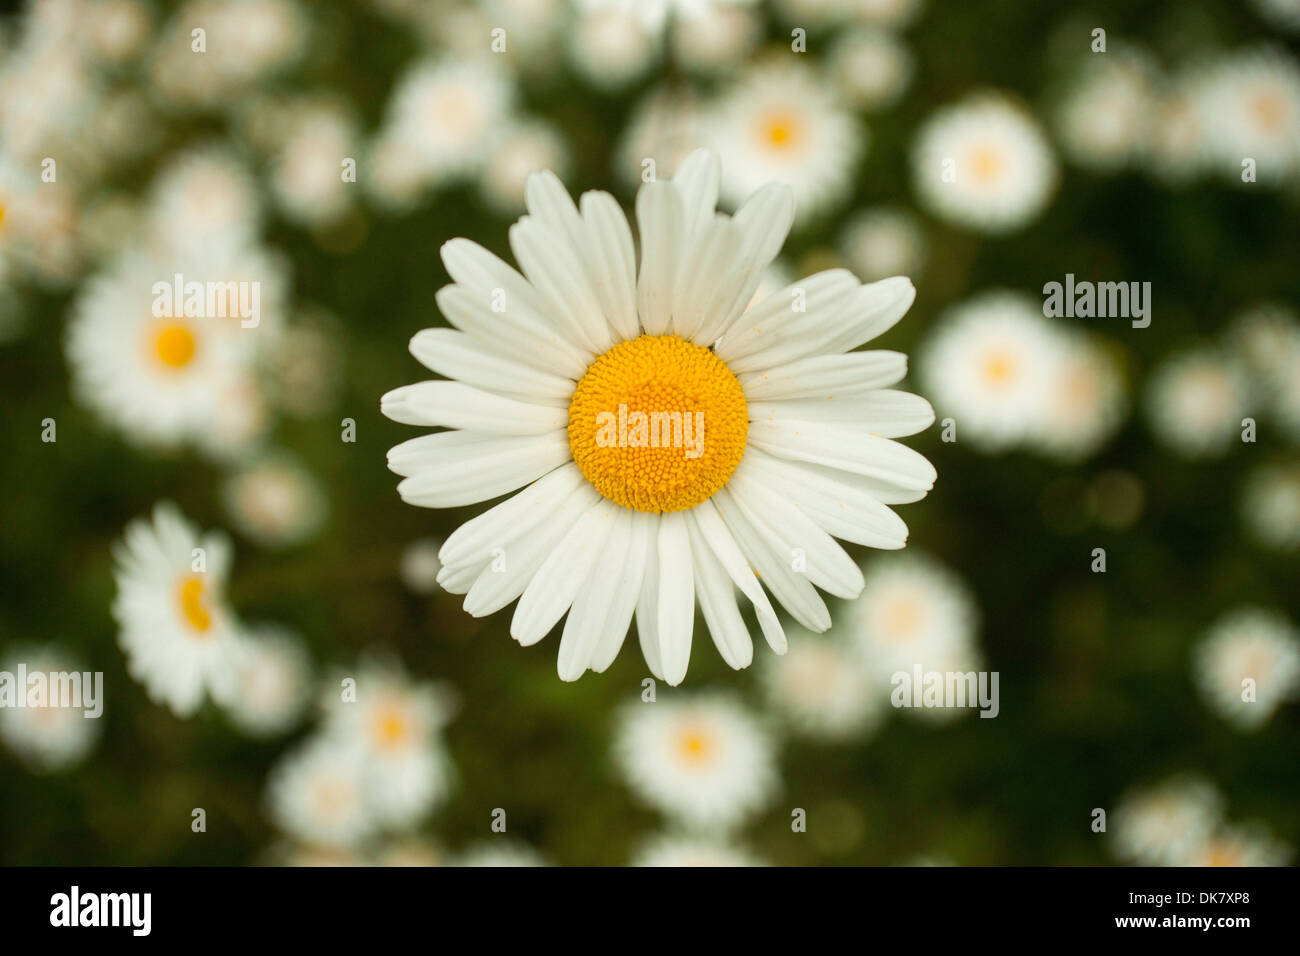 Daisy type flower white with yellow eye on a background of similar daisy type flower white with yellow eye on a background of similar flowers izmirmasajfo